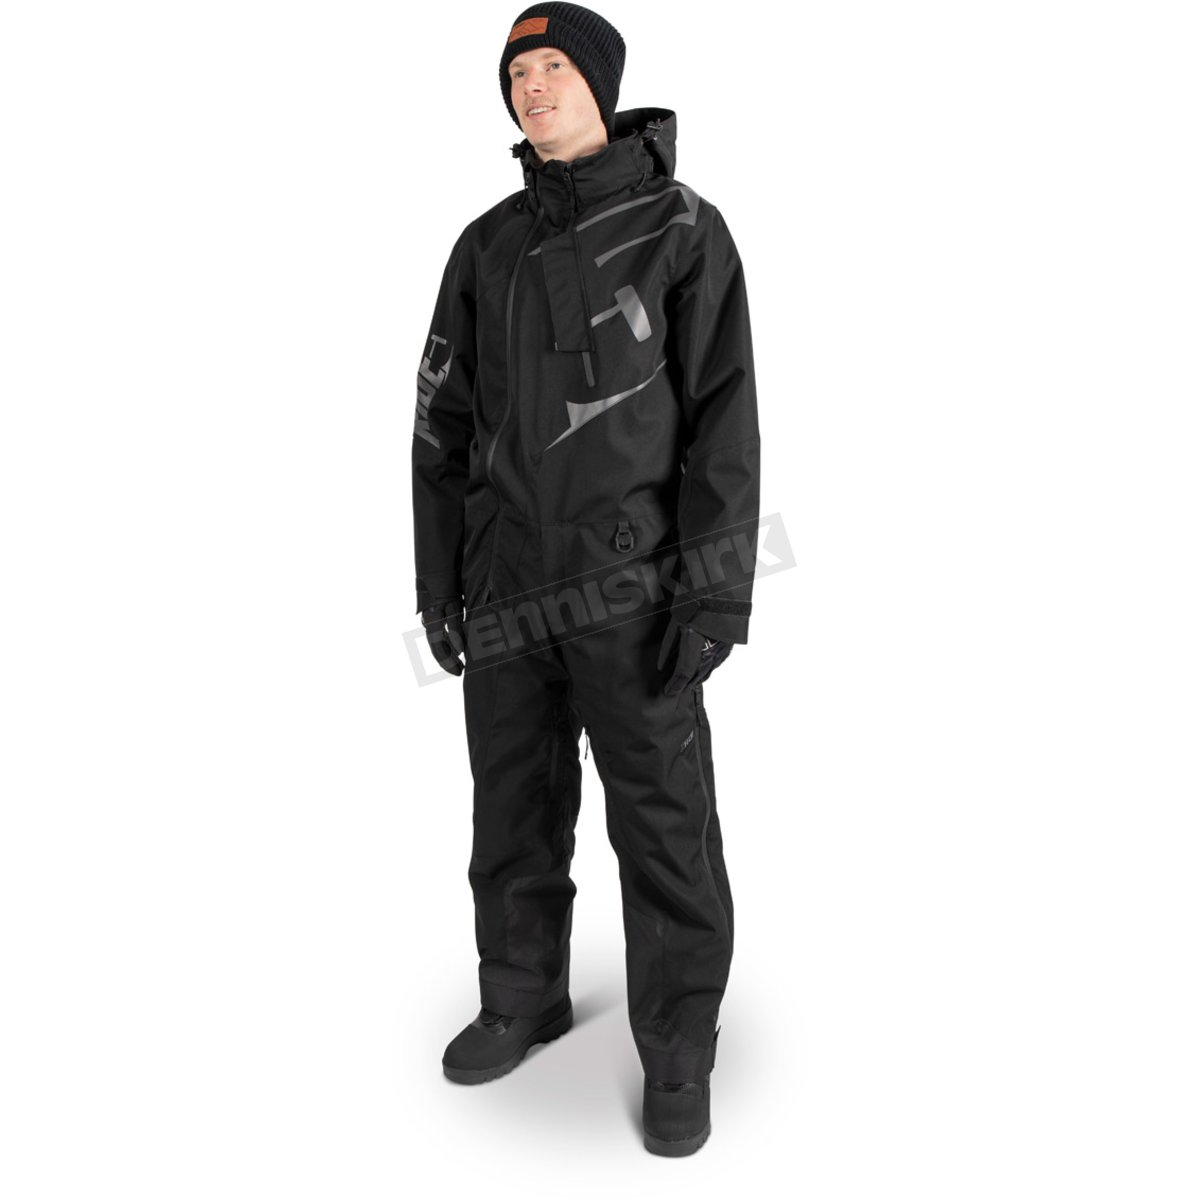 509 Allied Insulated Mono Suit Black Ops - Medium Short